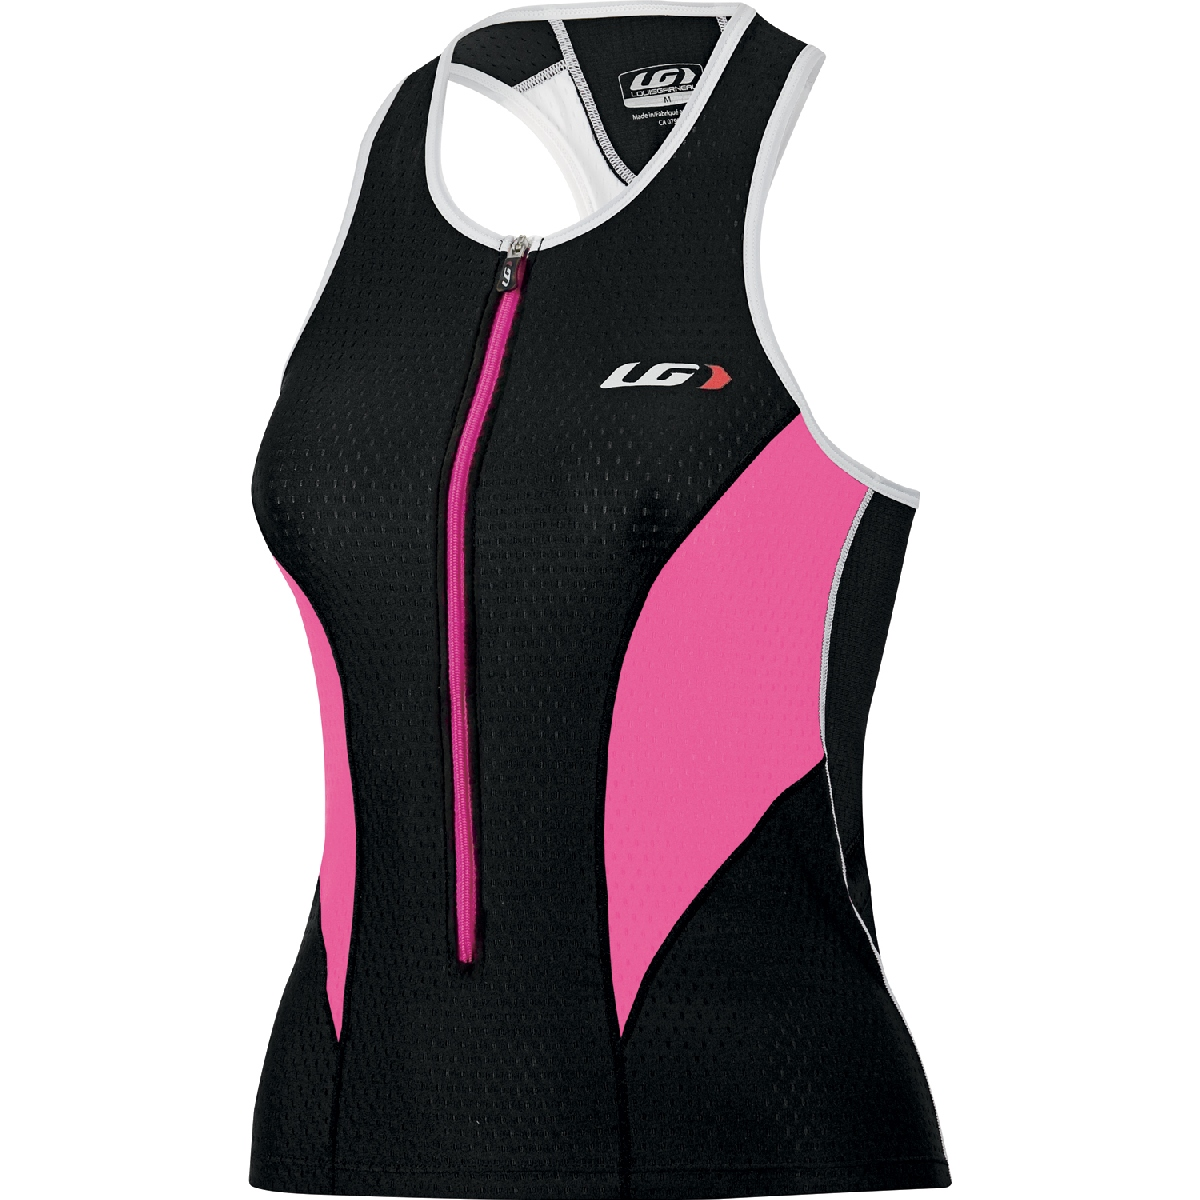 Louis Garneau Pro Triathlon Top Women's Size L Black FlashPink U.S.A. & Canada